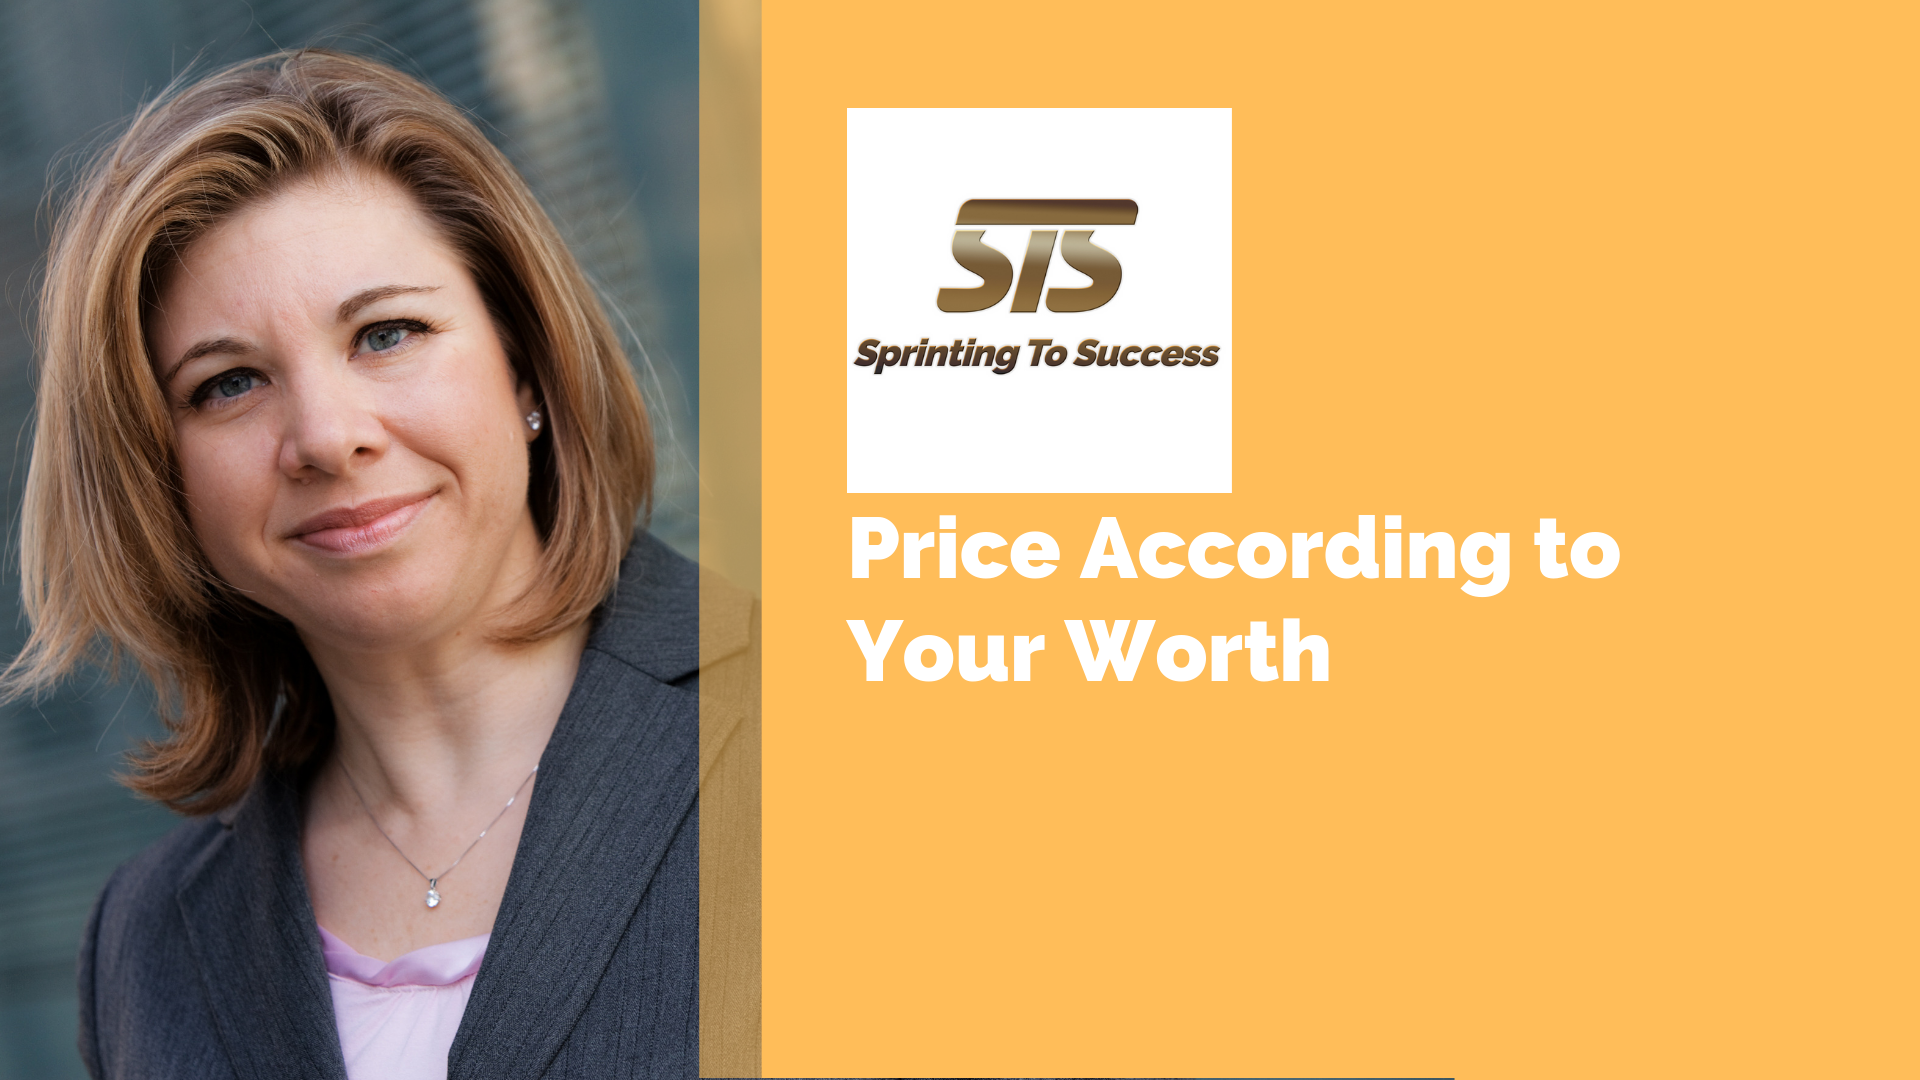 The Pricing Lady on Sprinting to Success